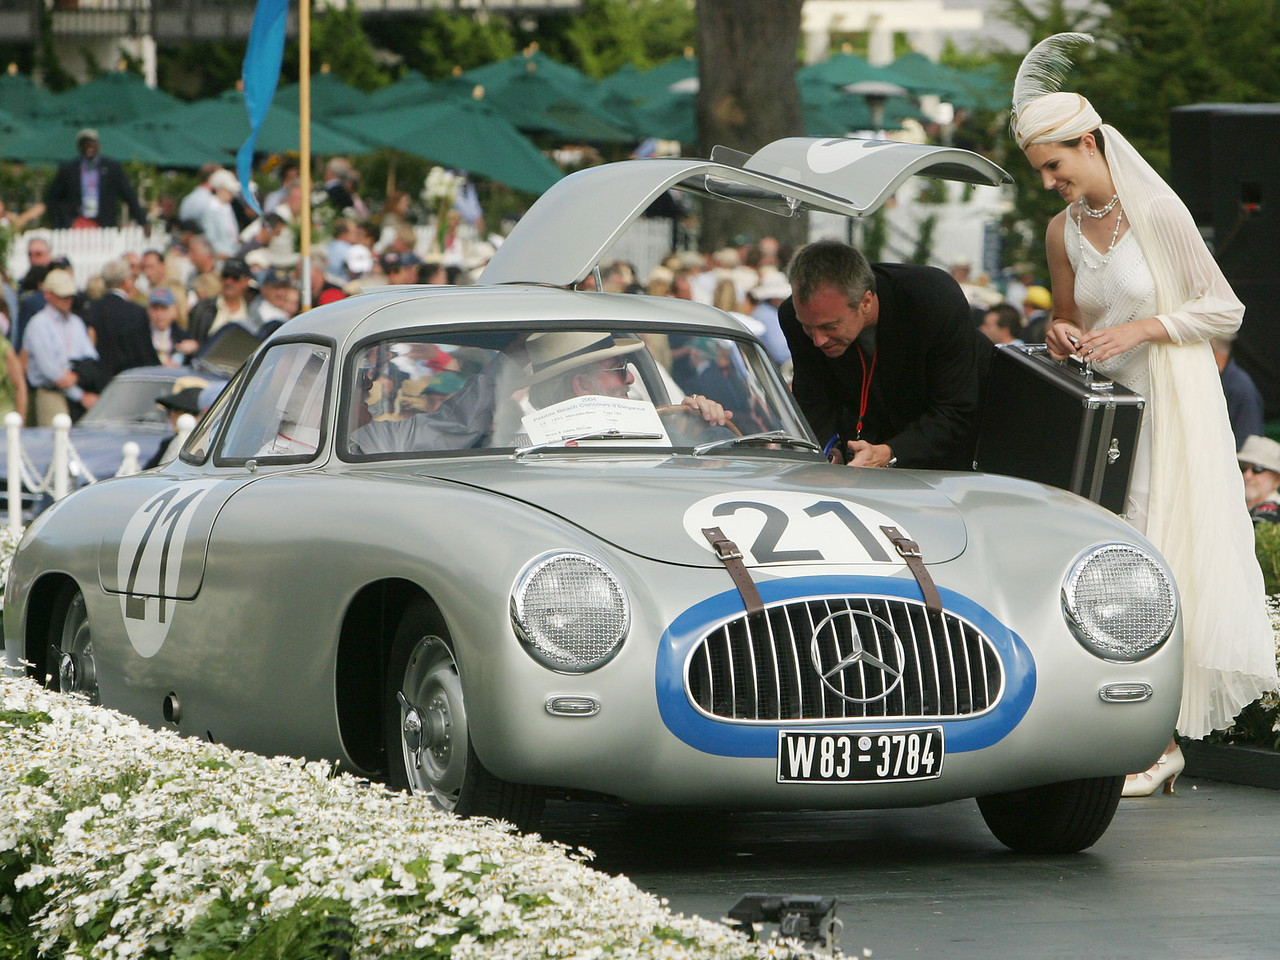 1952 Mercedes-Benz Type 194 Coupe.  Briggs Cunningham Trophy.